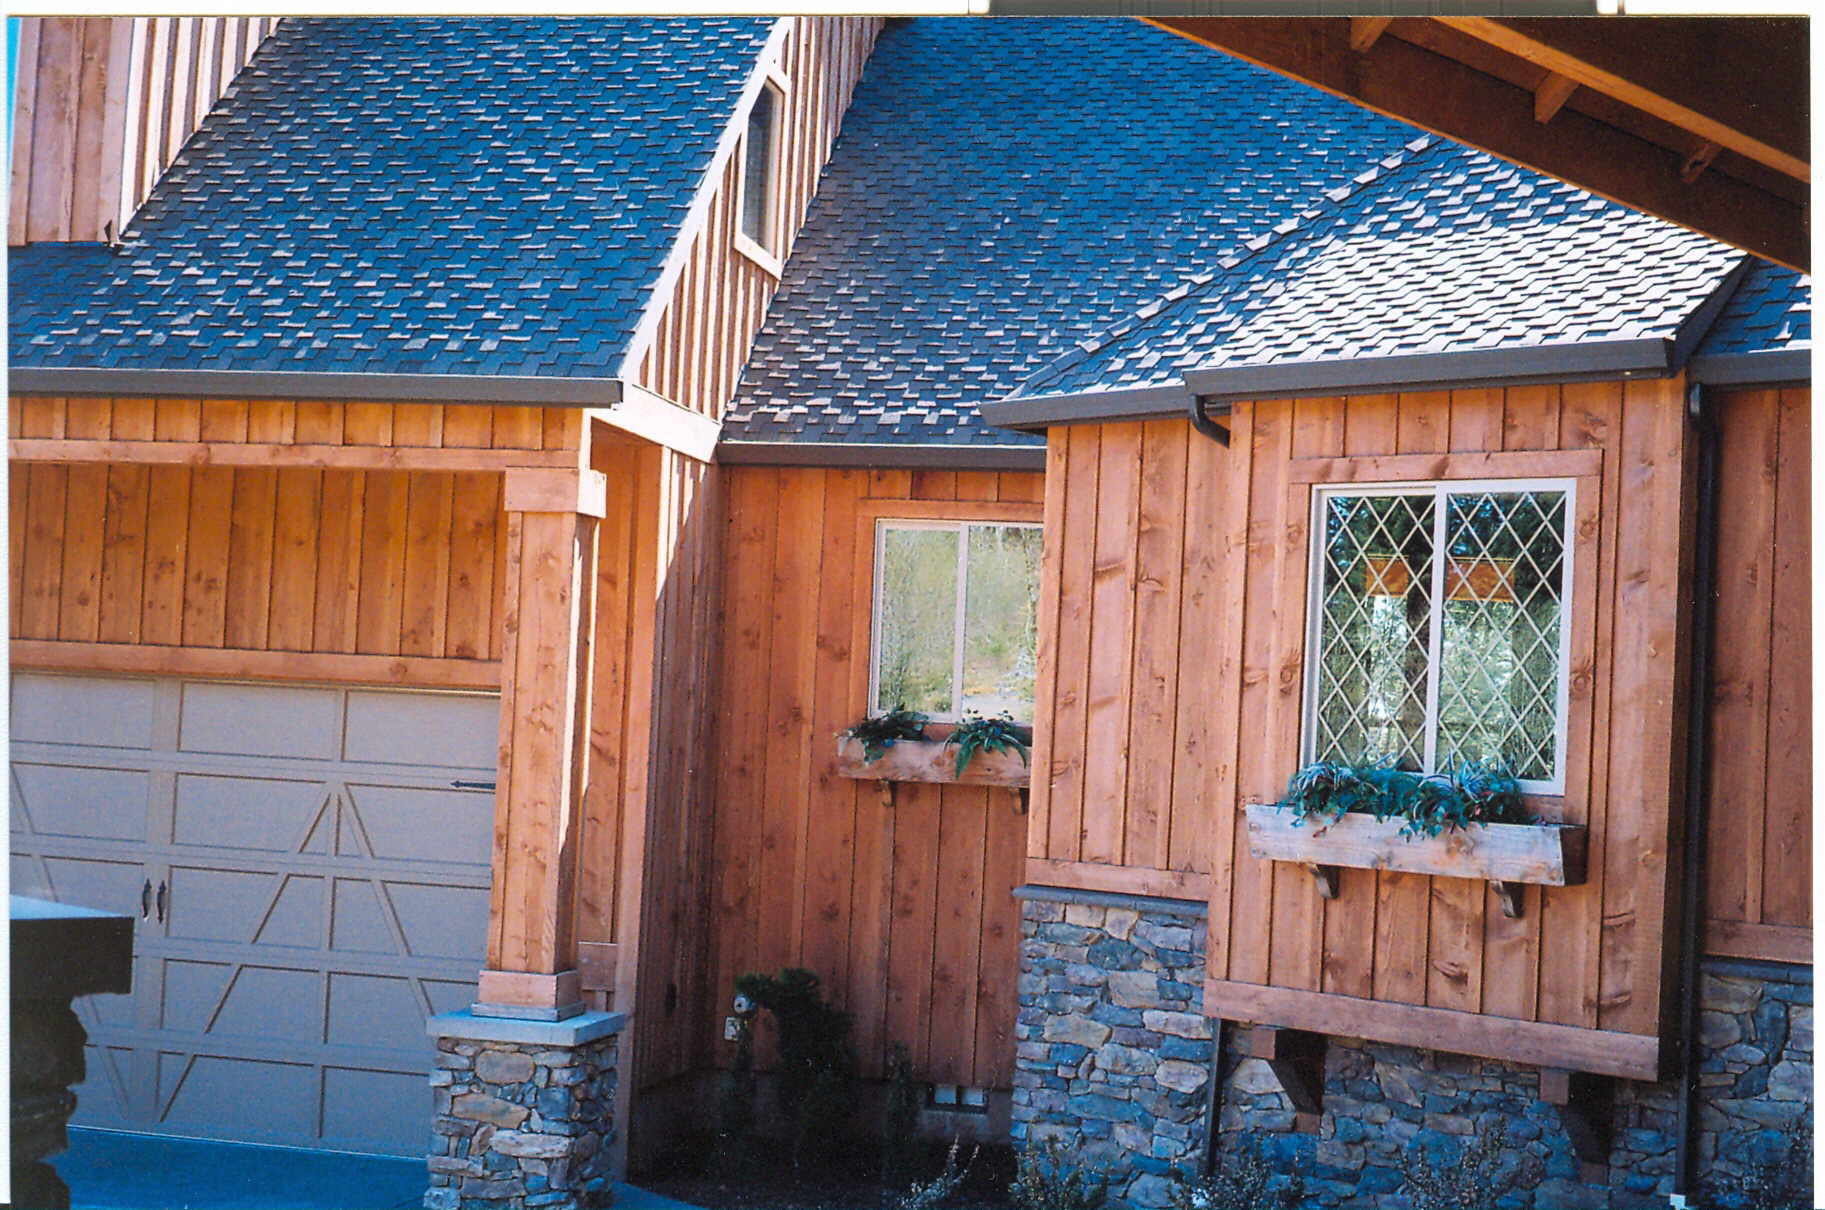 Click For Larger Image Of This Board And Batten Siding Project